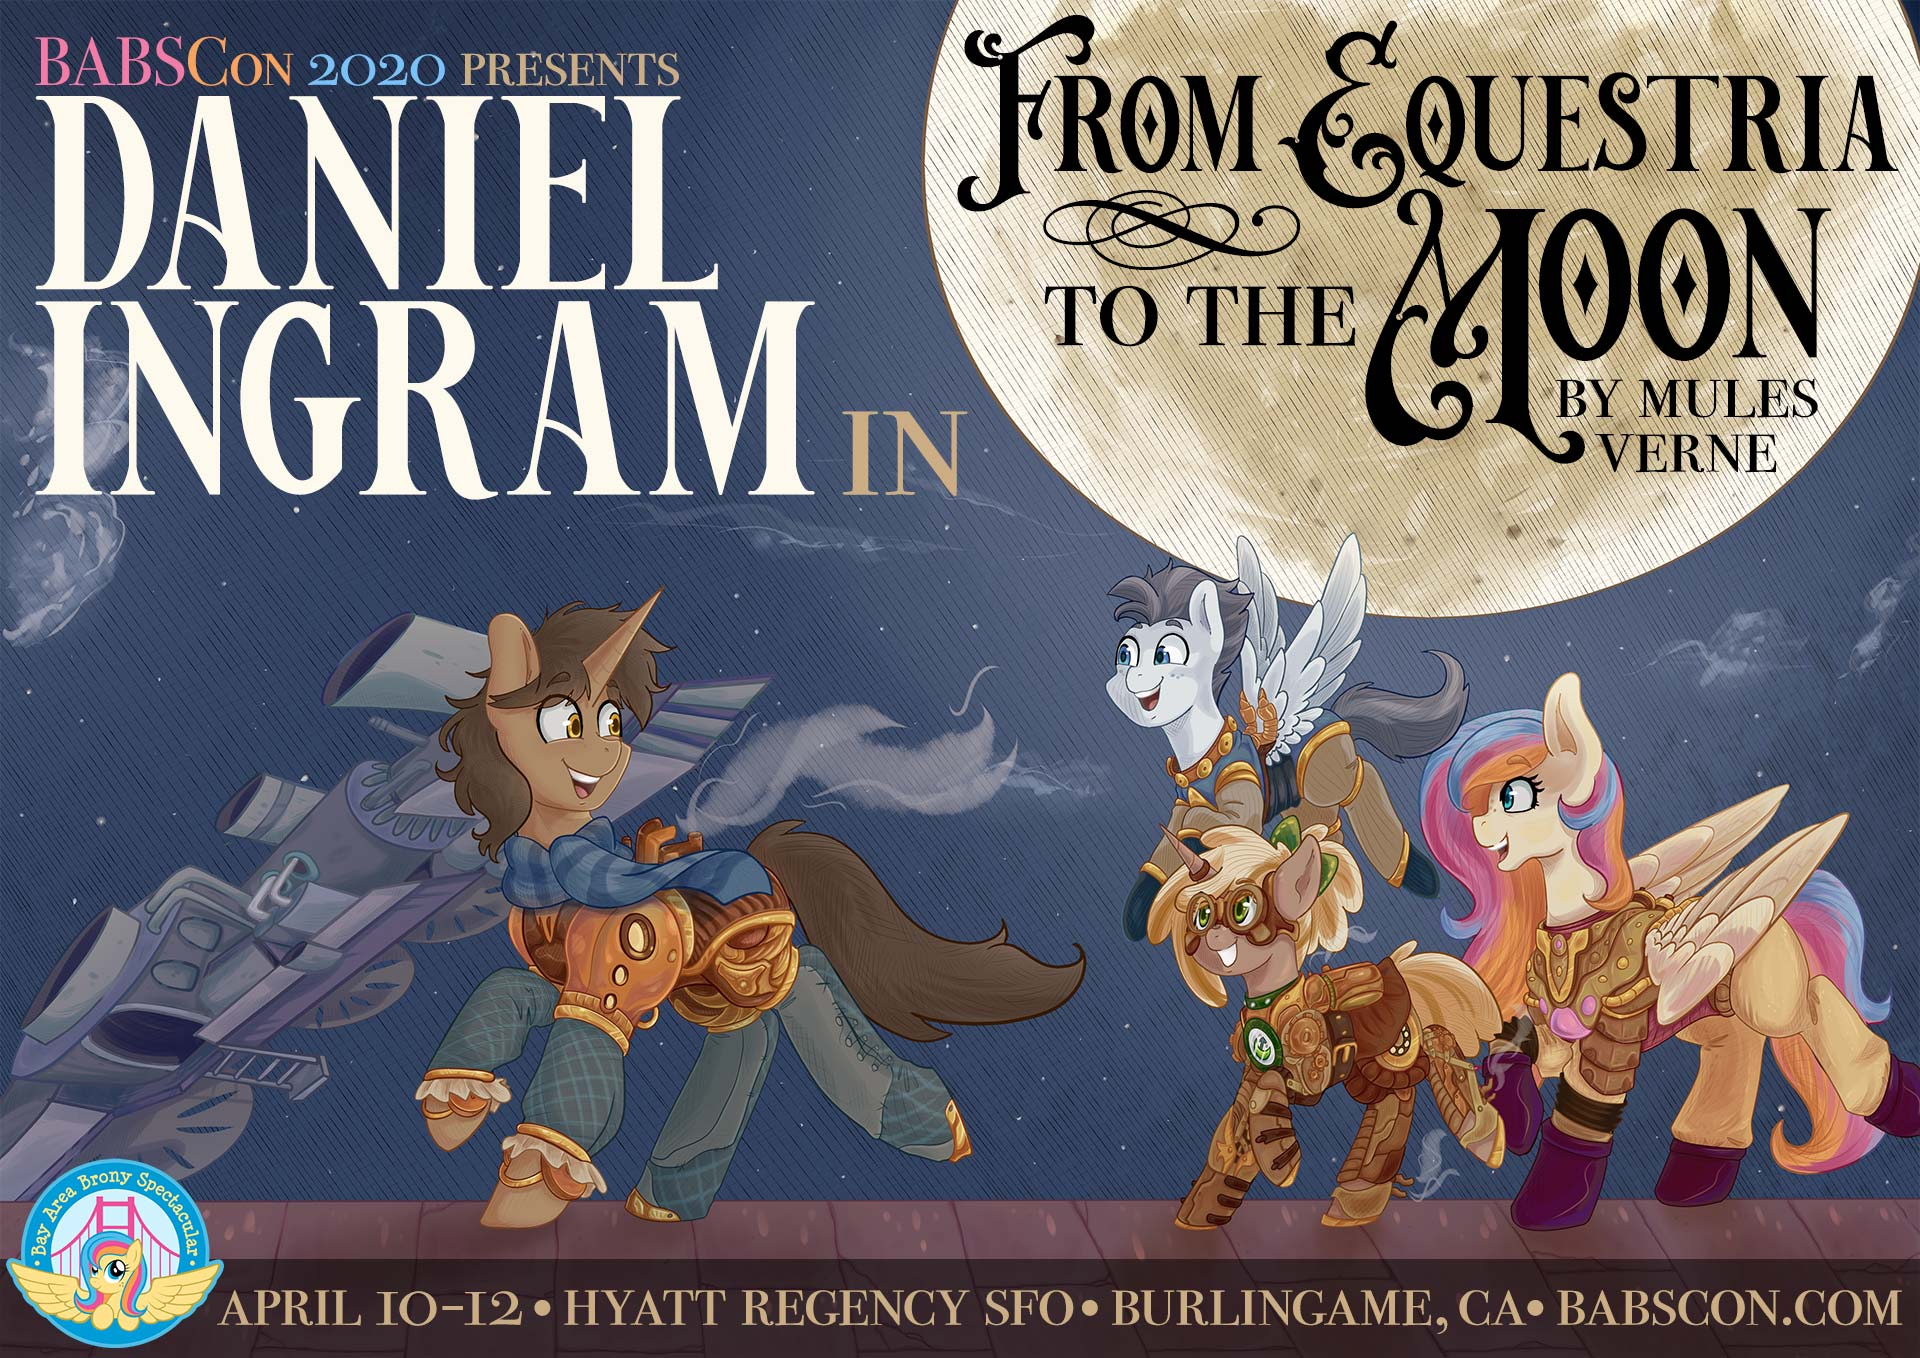 BABSCon Goes Over The Moon With Daniel Ingram & Black Friday Weekend Sale